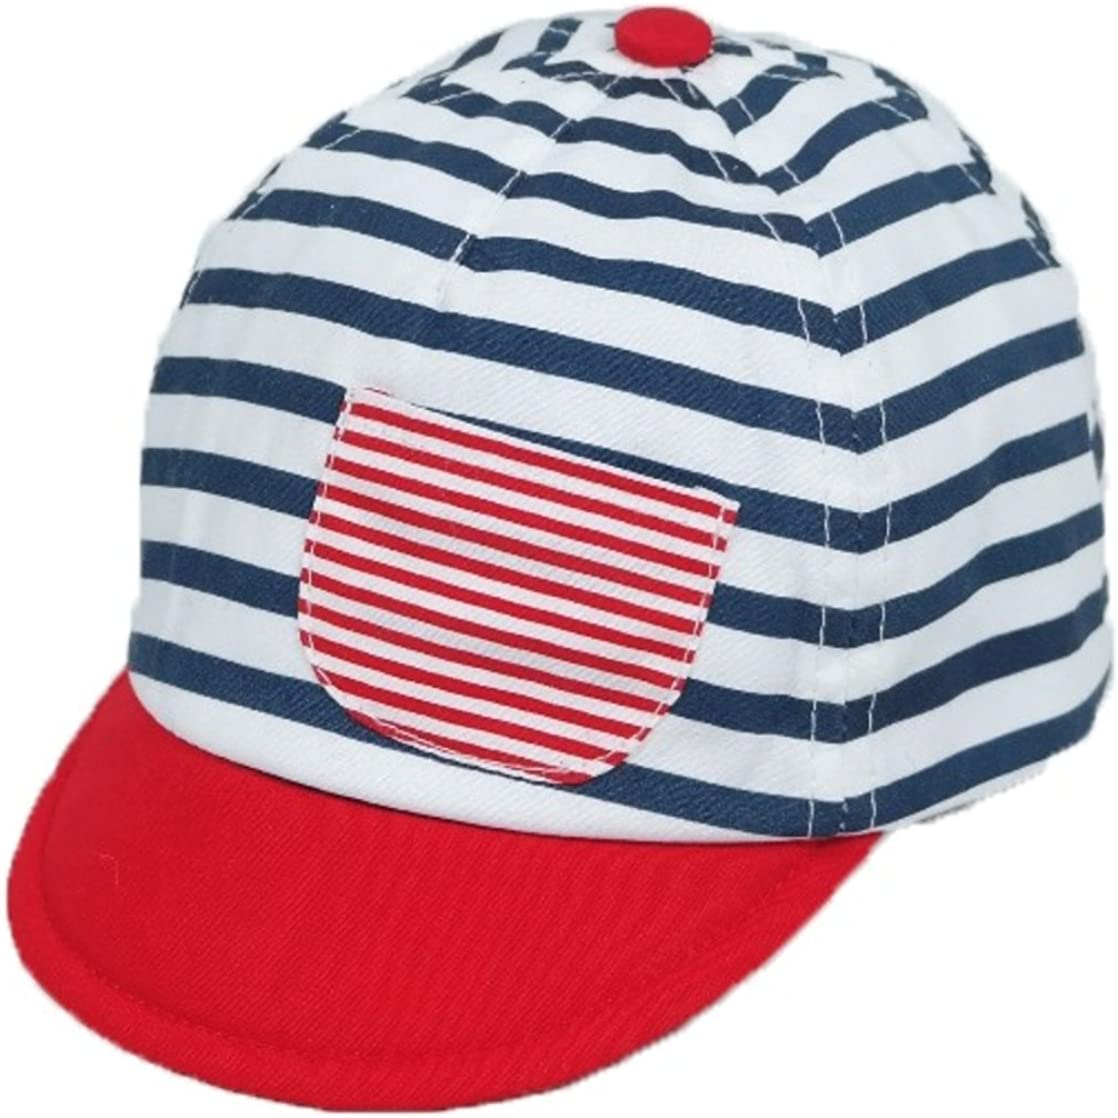 Cute Baby//Toddler Nautical Striped Cap Ages 0-18 Months